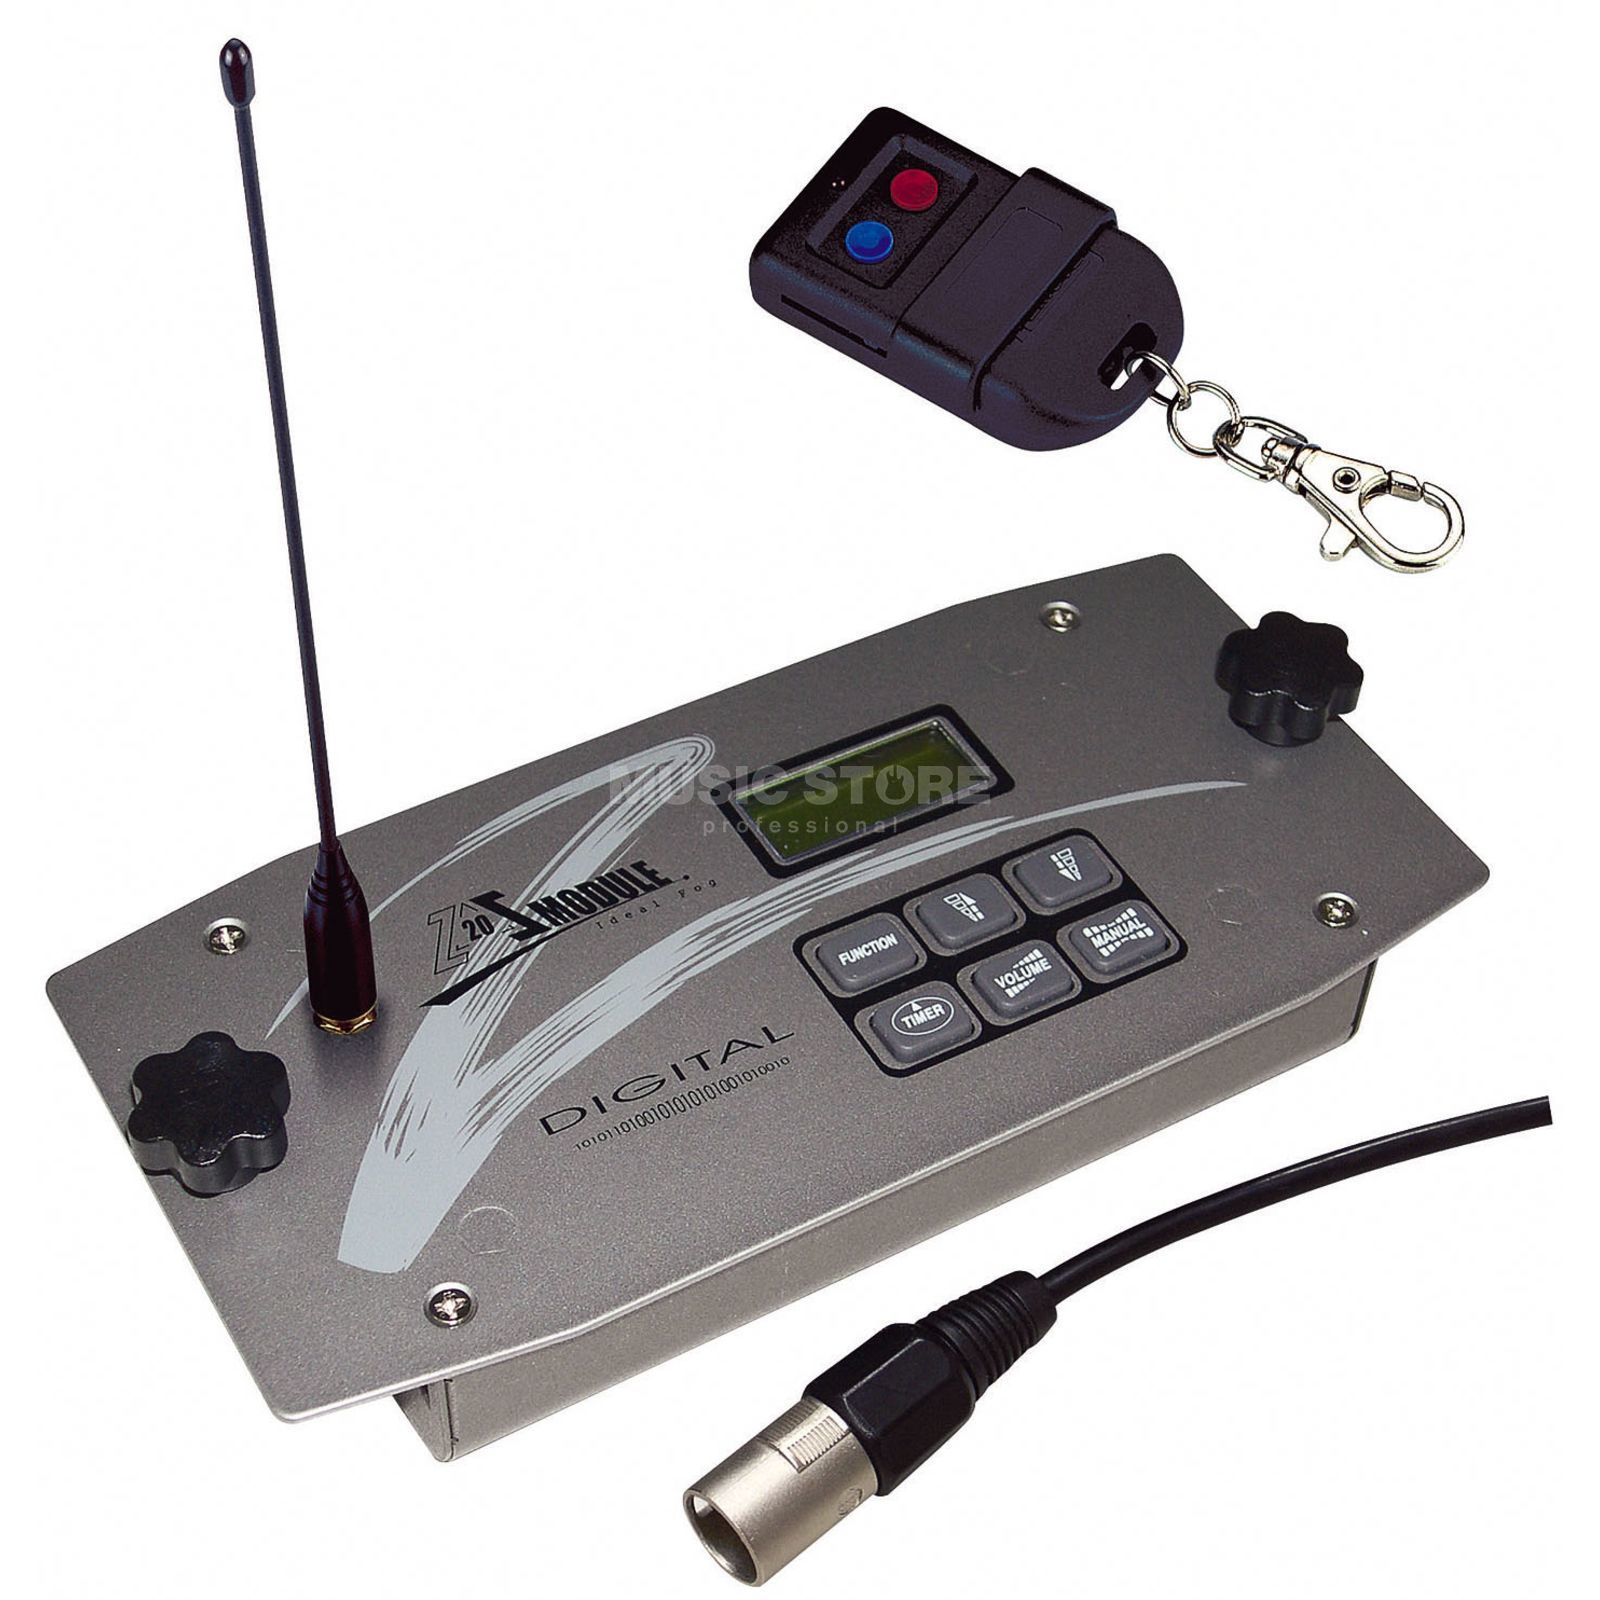 Antari Z-30 Wireless Remote for Z-1500II, Z-3000II Produktbillede